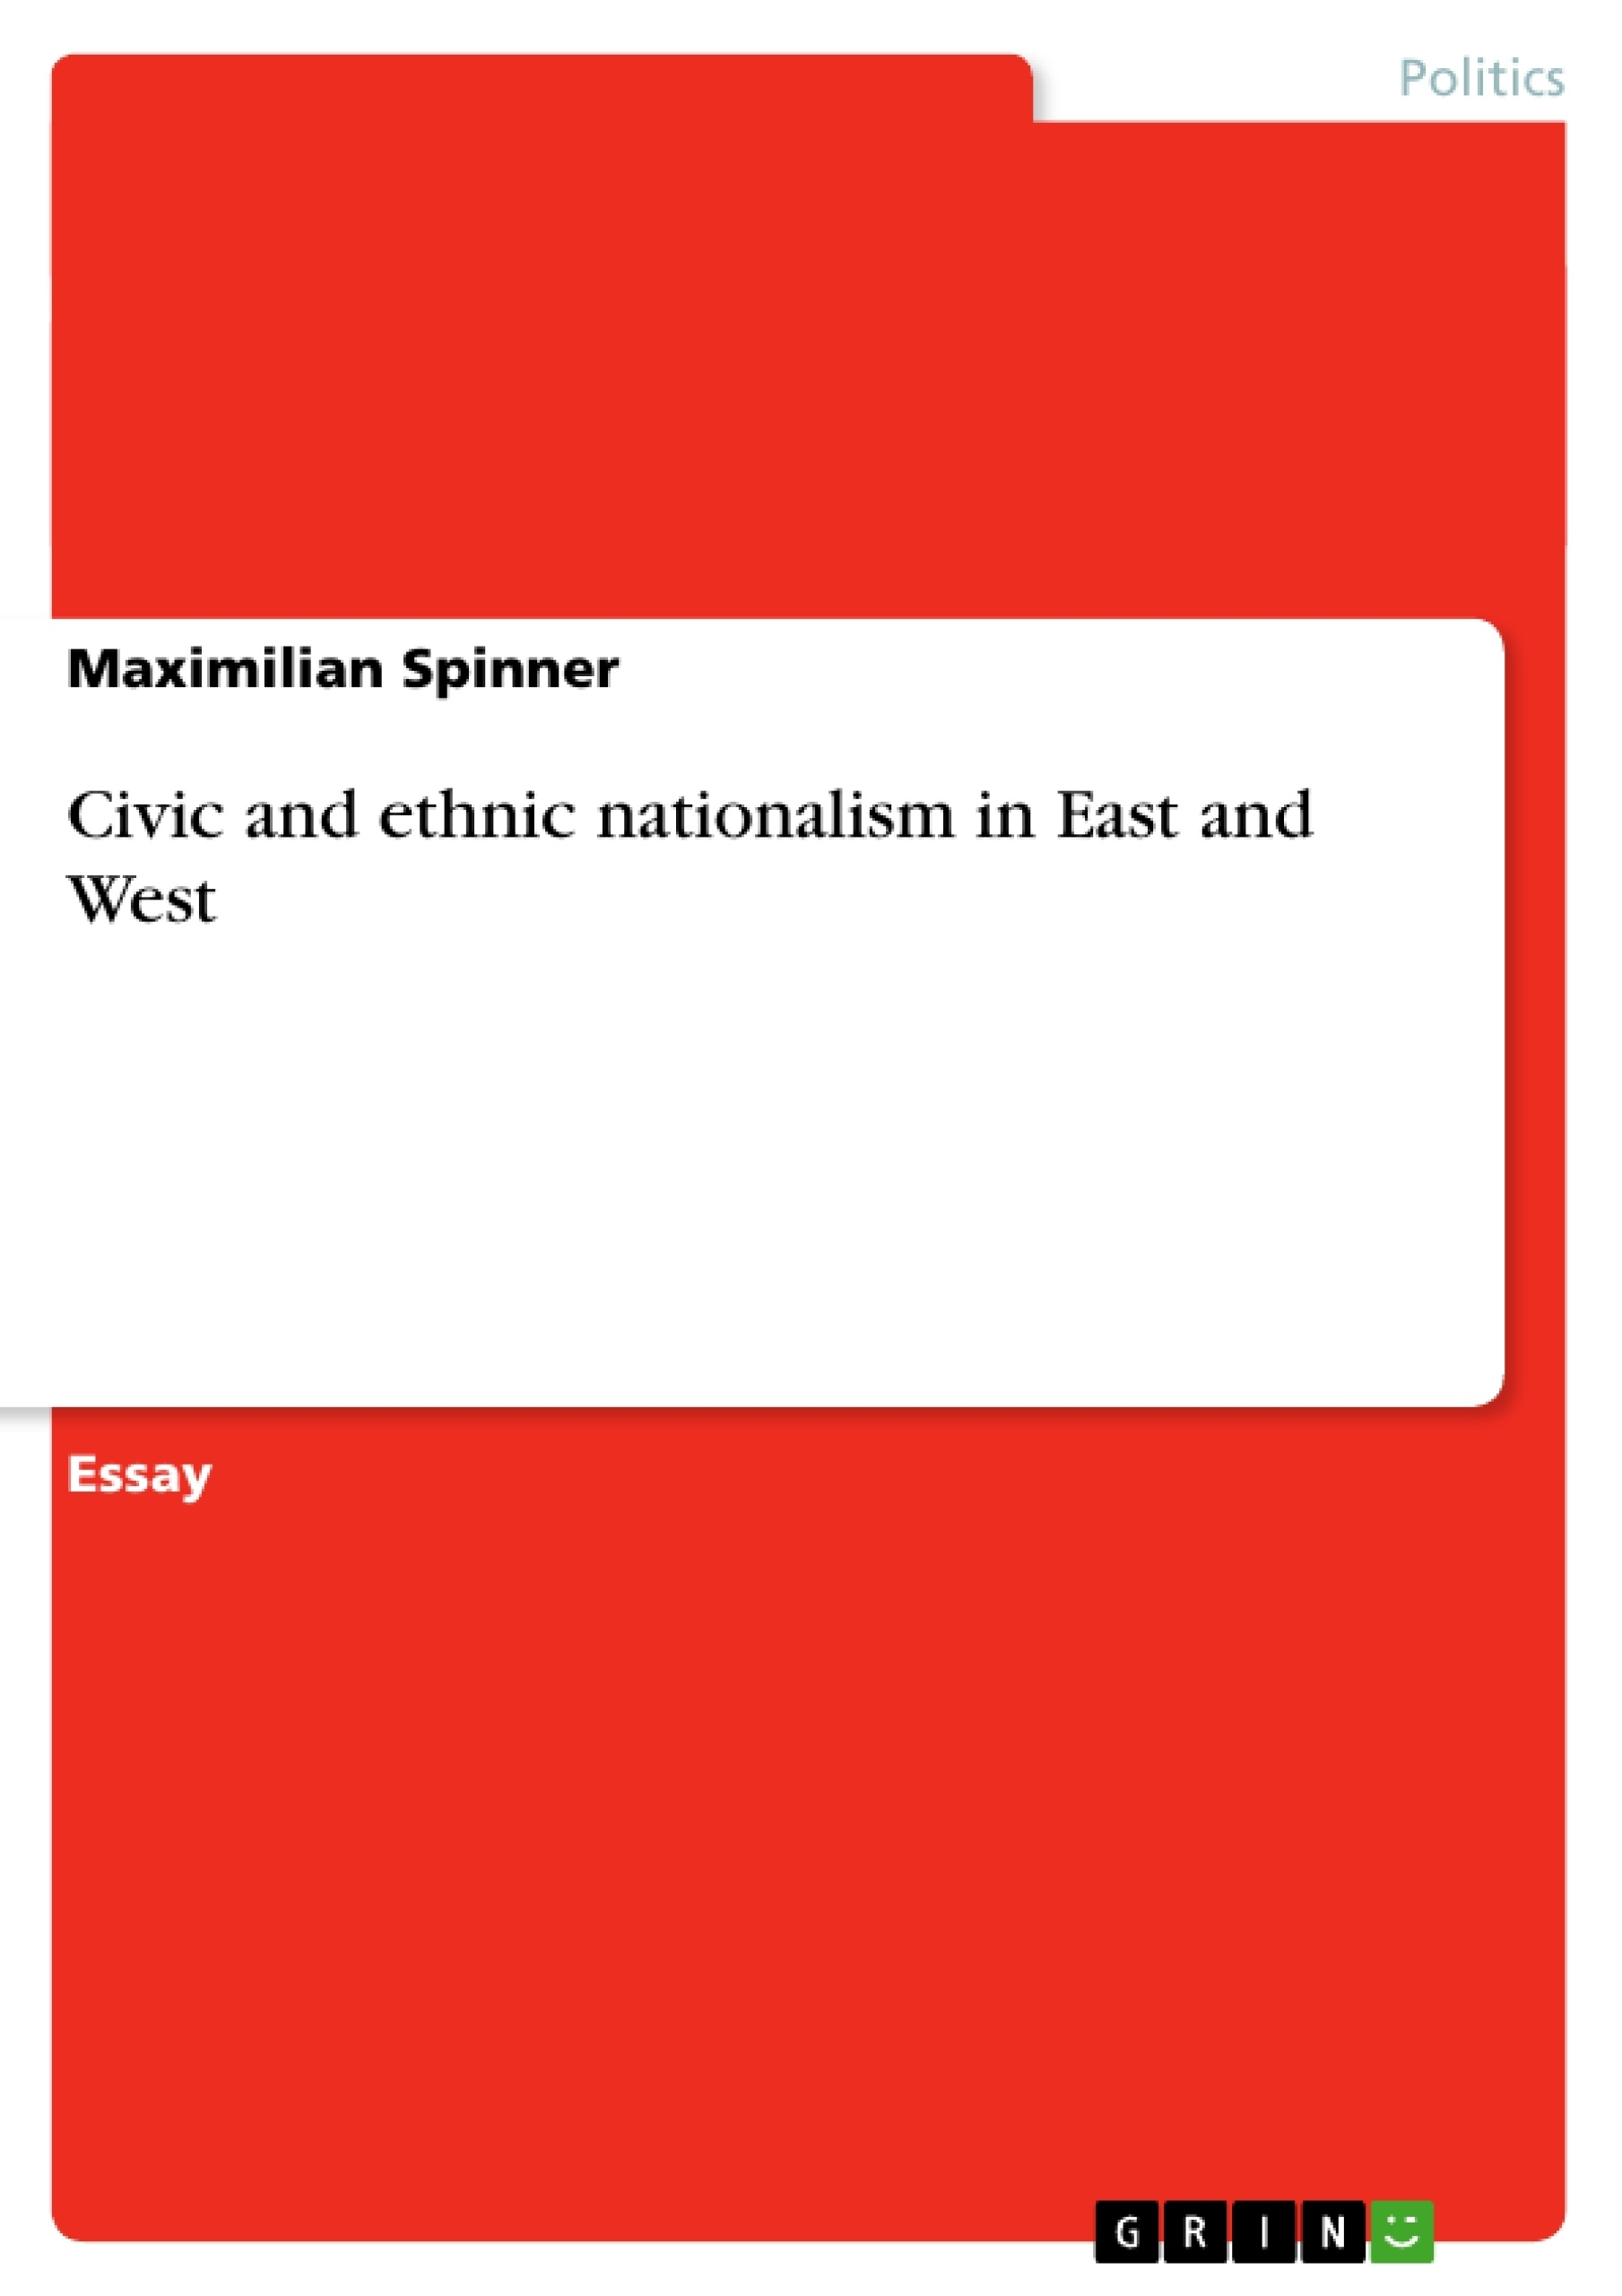 Title: Civic and ethnic nationalism in East and West